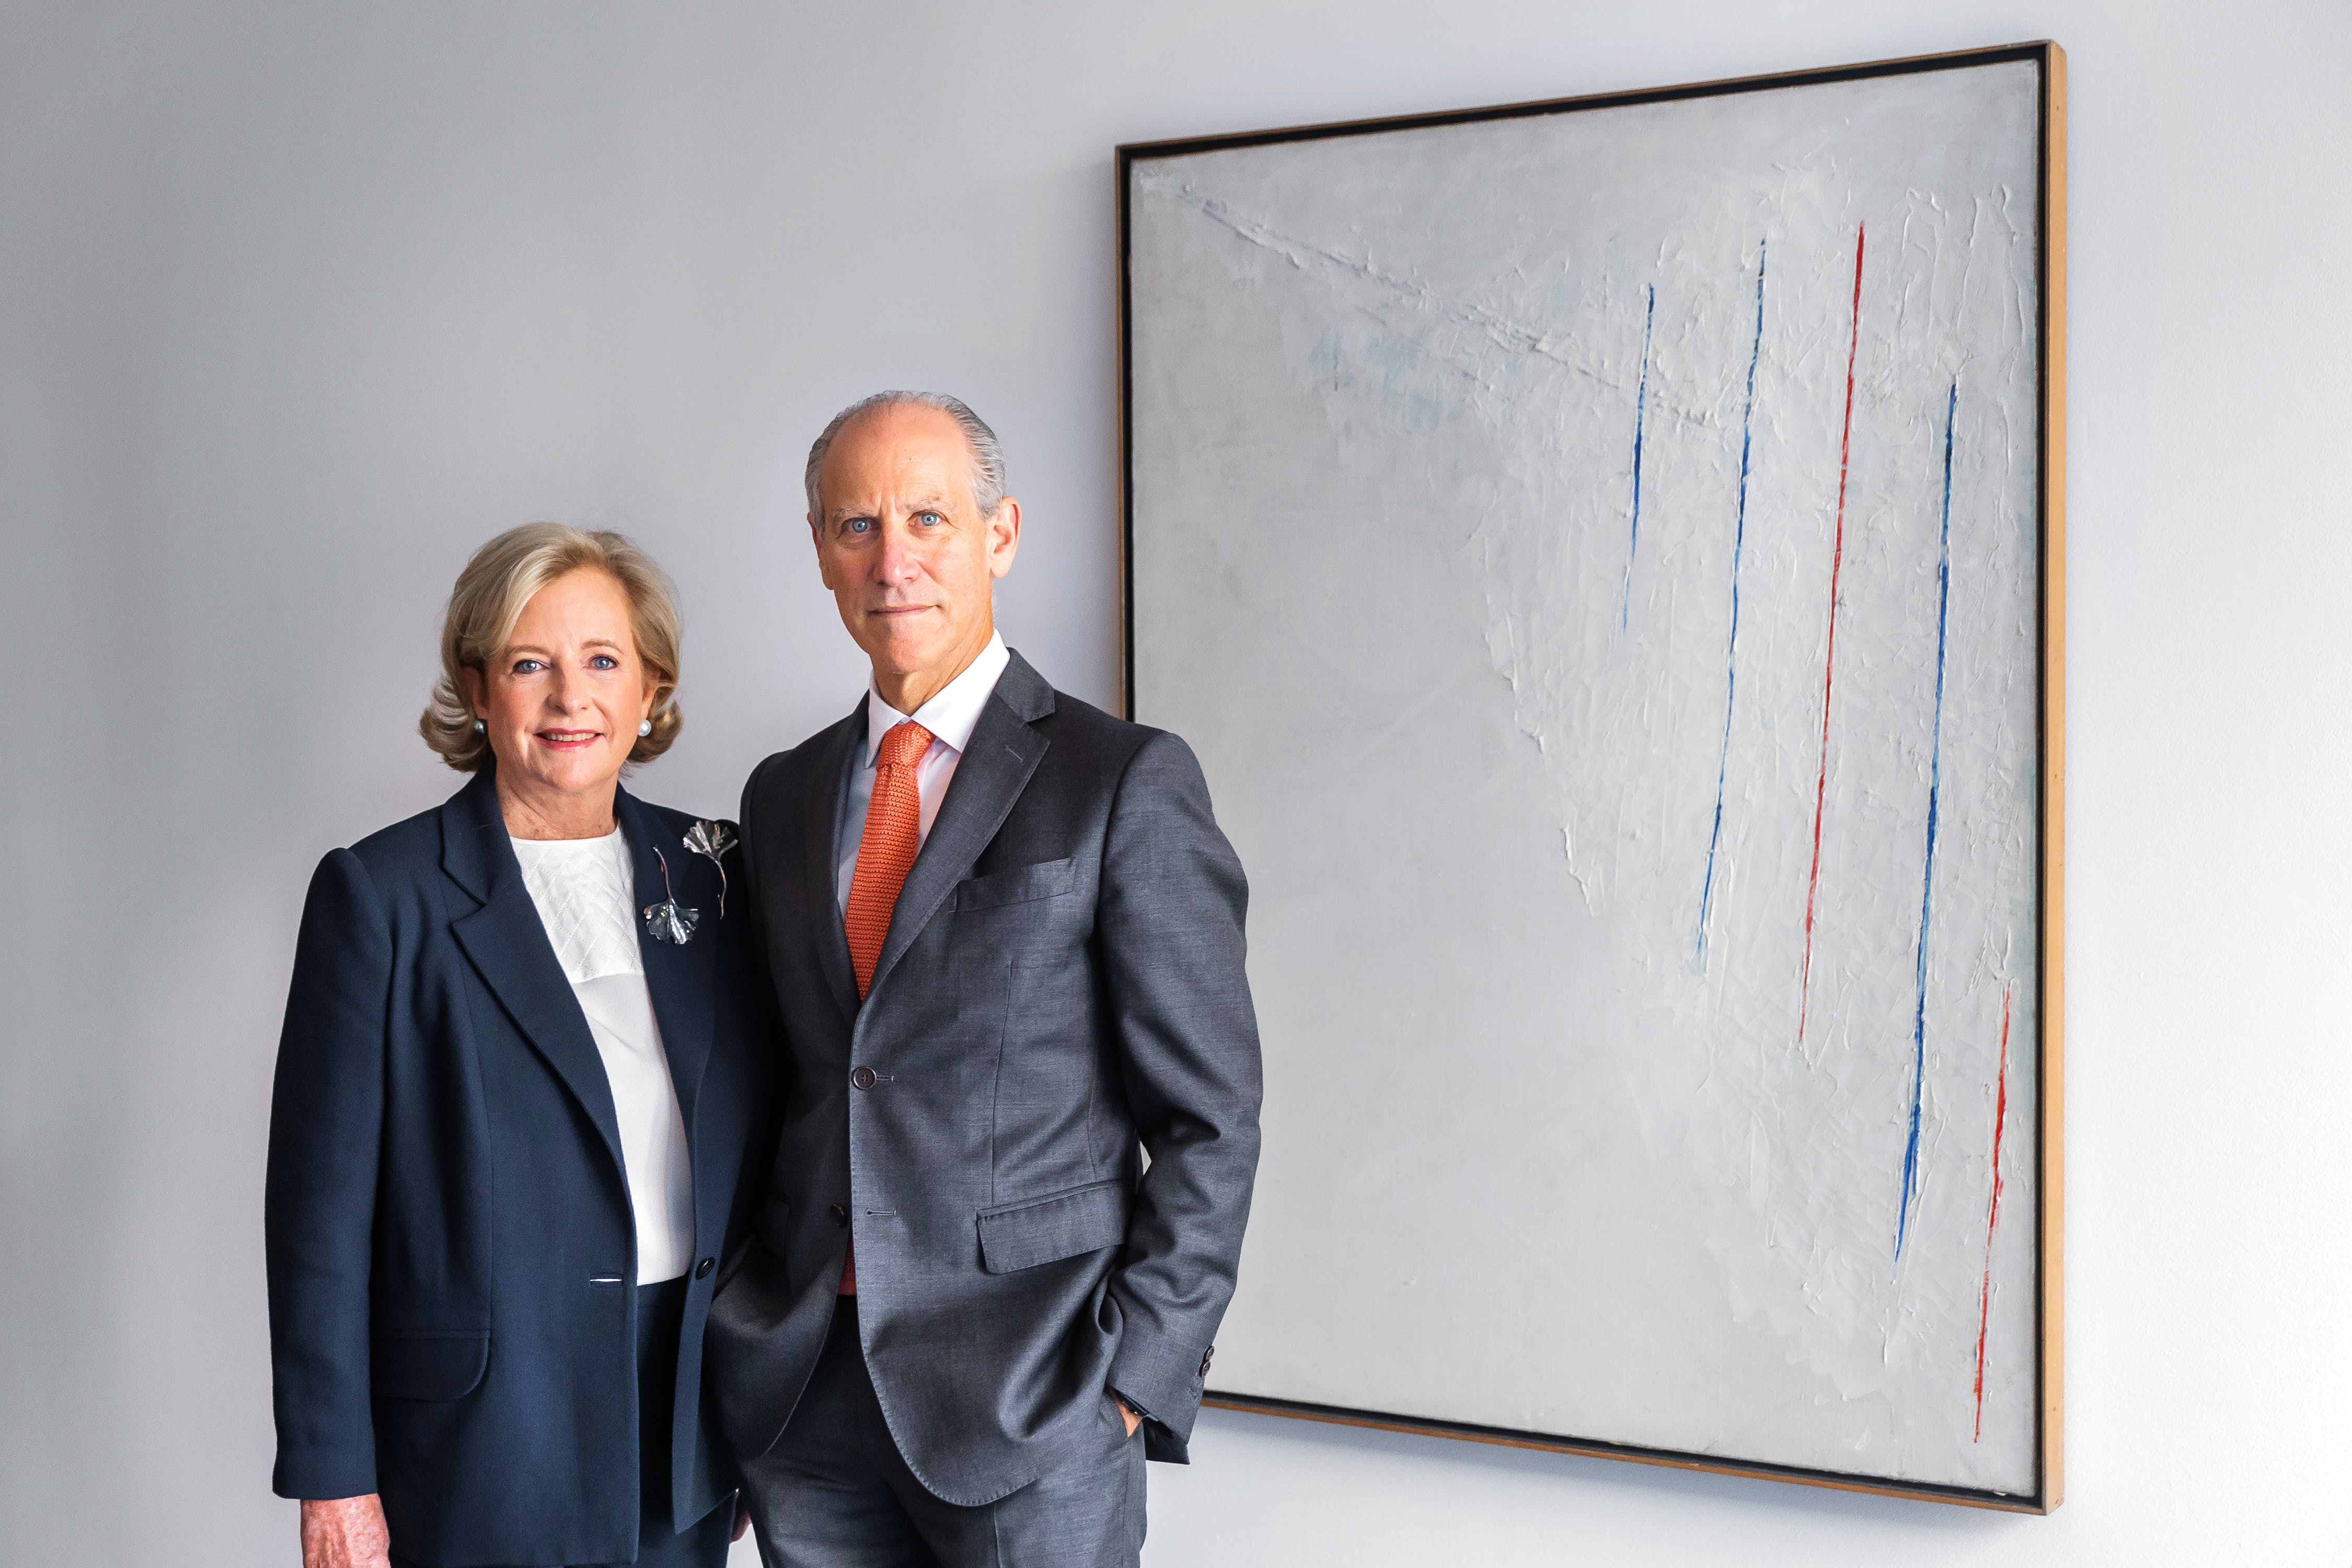 Patricia Phelps de Cisneros and Glenn D. Lowry, Director, The Museum of Modern Art, stand next to Alejandro Otero, 'Colored Lines on White Background' (1950) © 2016 Scott Rudd